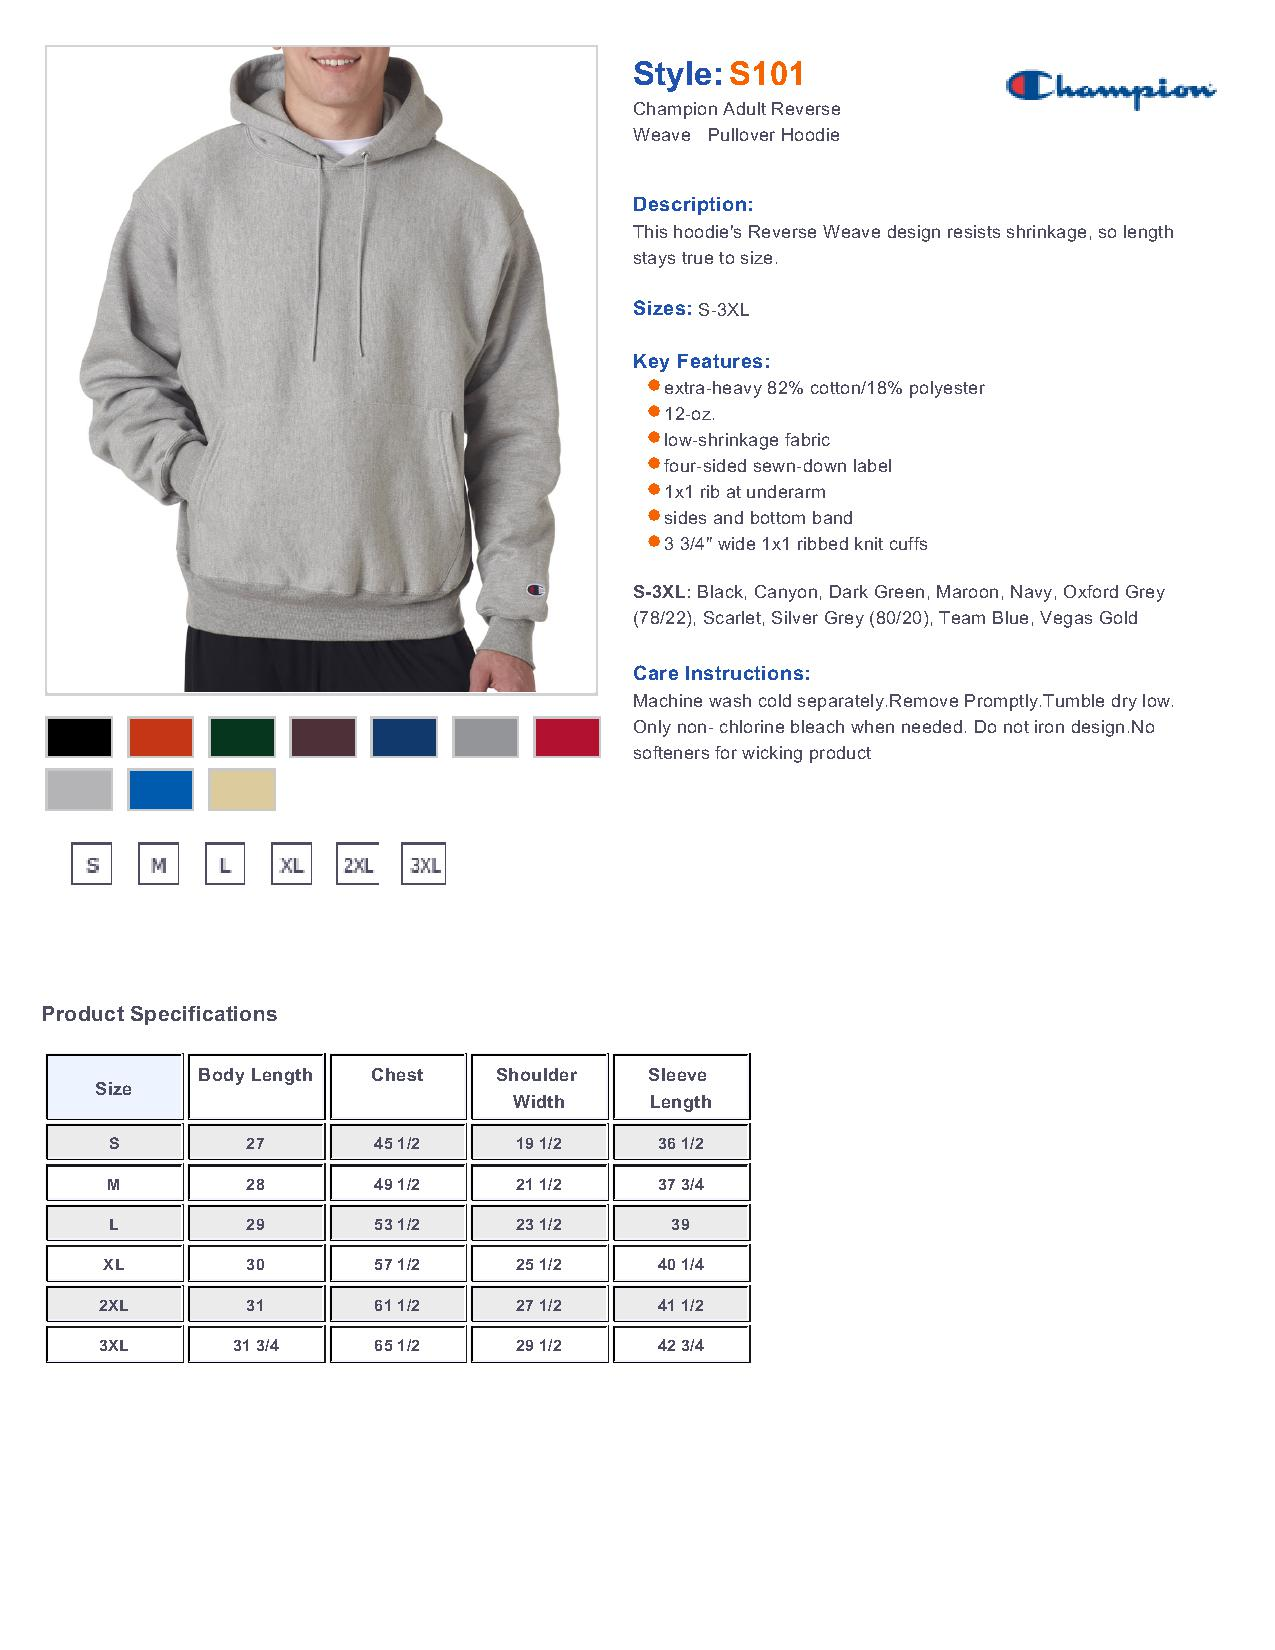 Champion S101 Reverse Weave Hooded Sweatshirt $38.80 - Sweater